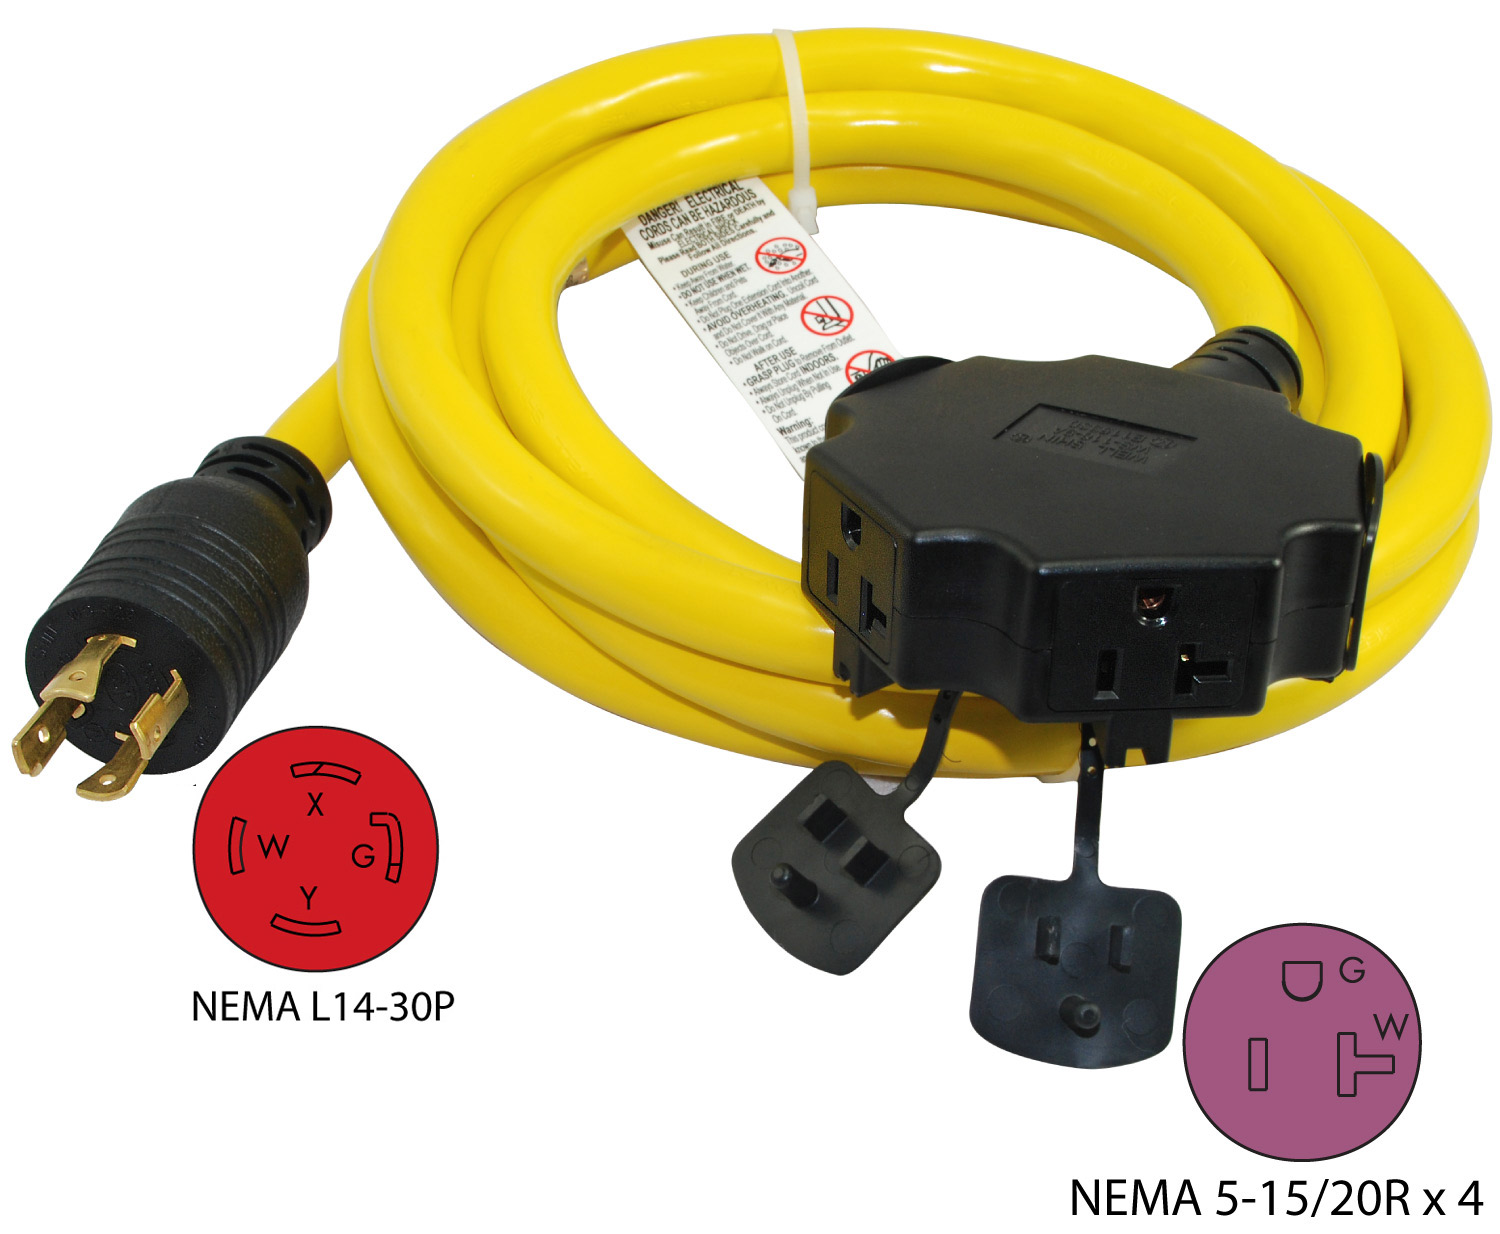 l14 30p wiring diagram 2 moen shower mixing valve conntek 20610 010 nema to 4 5 15 20r generator